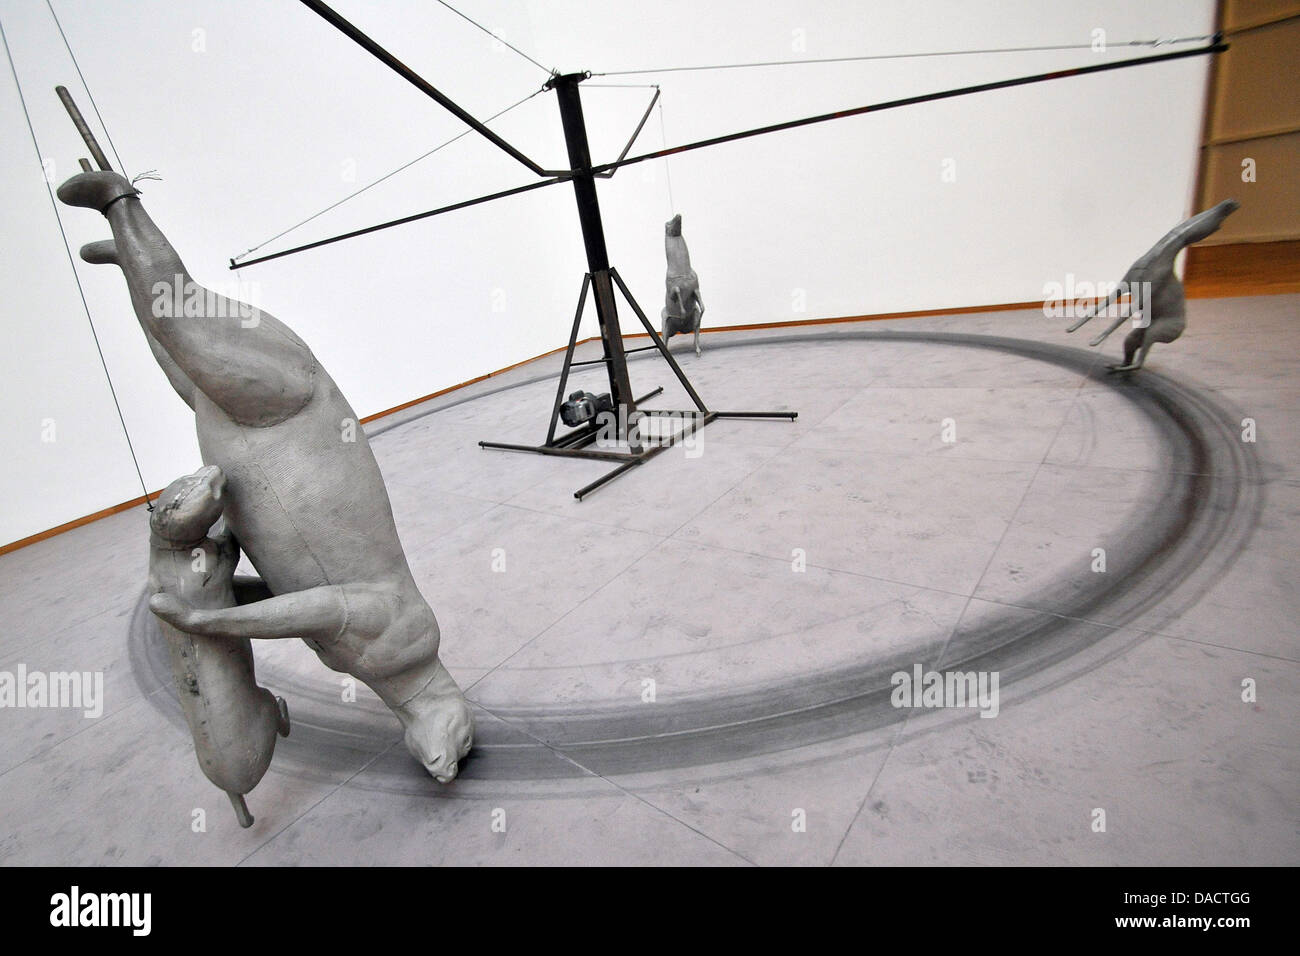 the sculpture carousel 1988 of bruce nauman is presented at the